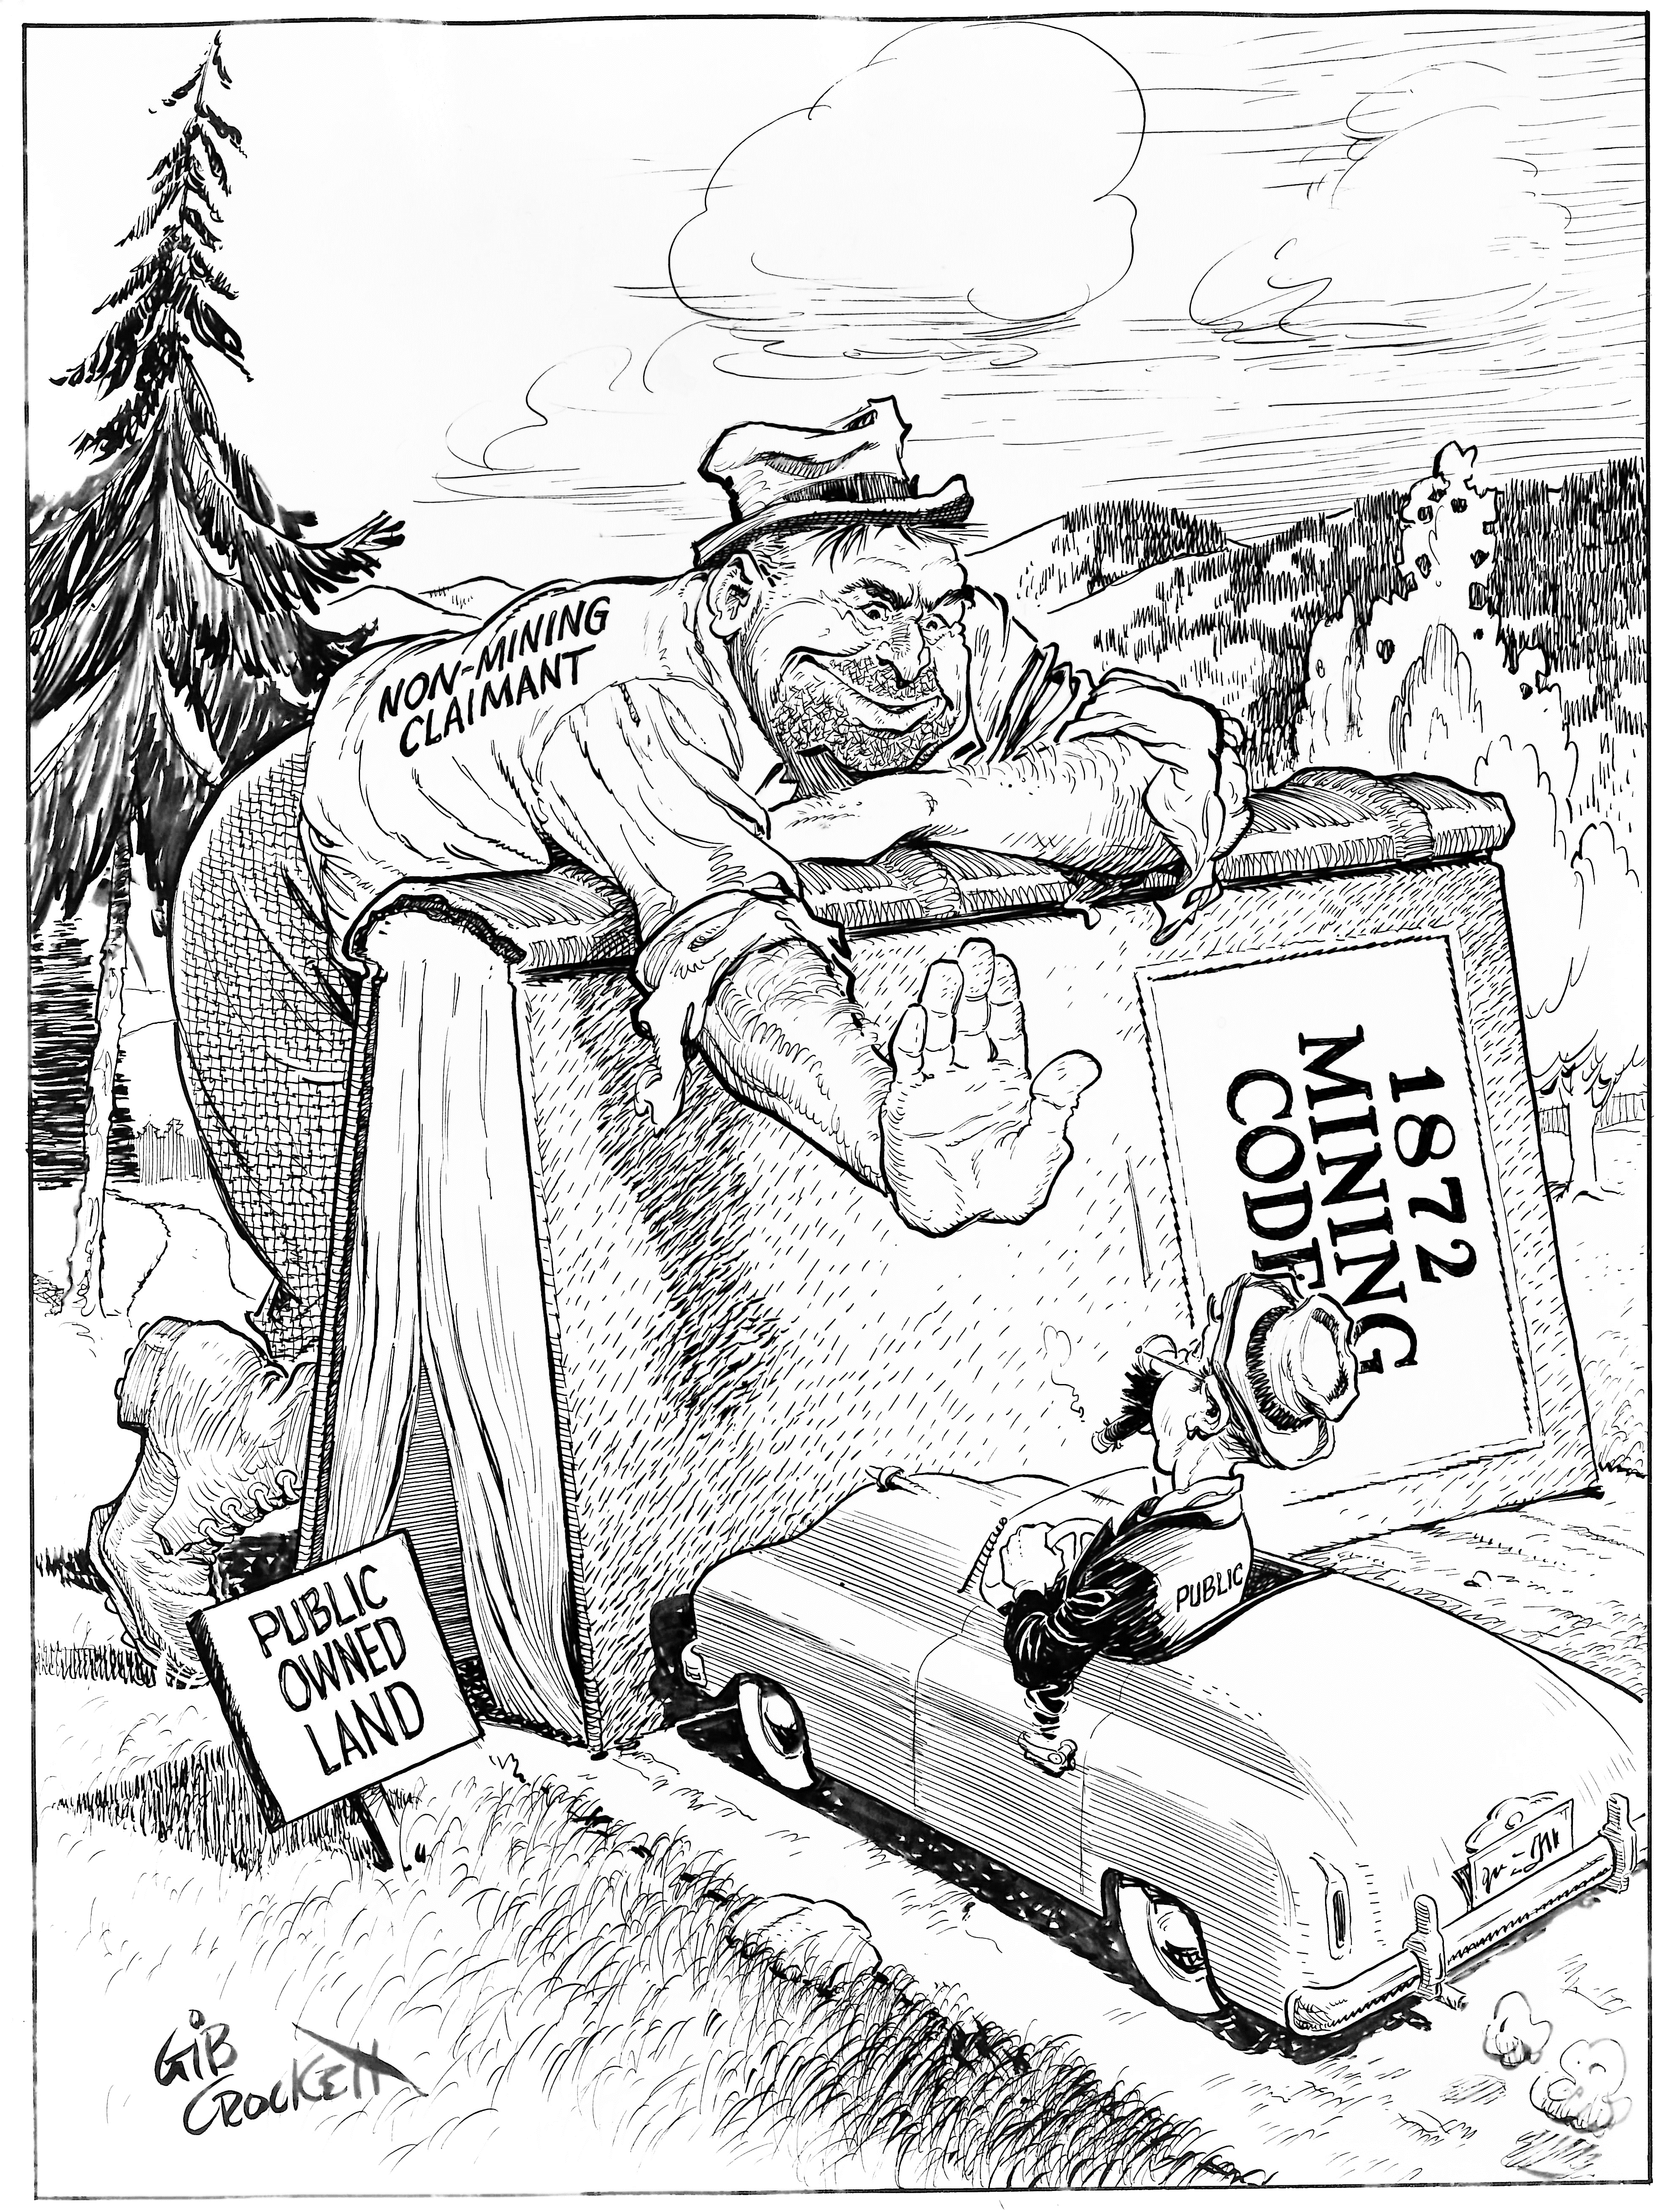 Gib Crockett Cartoon showing the 1872 mining code being used to block the public from using public land